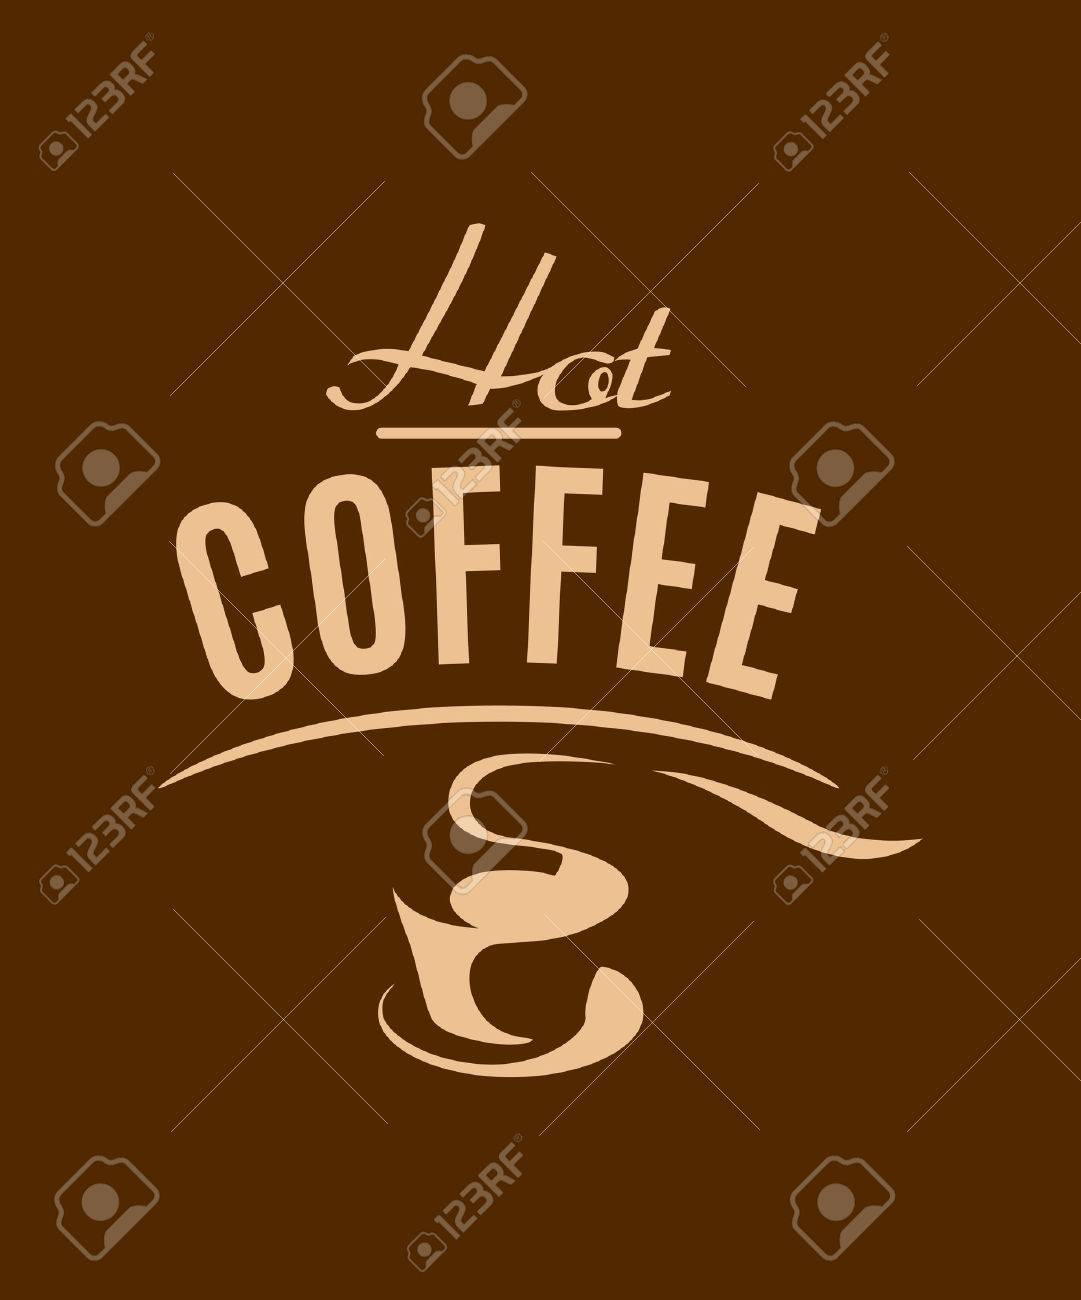 hot coffee cup poster with beige and brown colors for restaurant